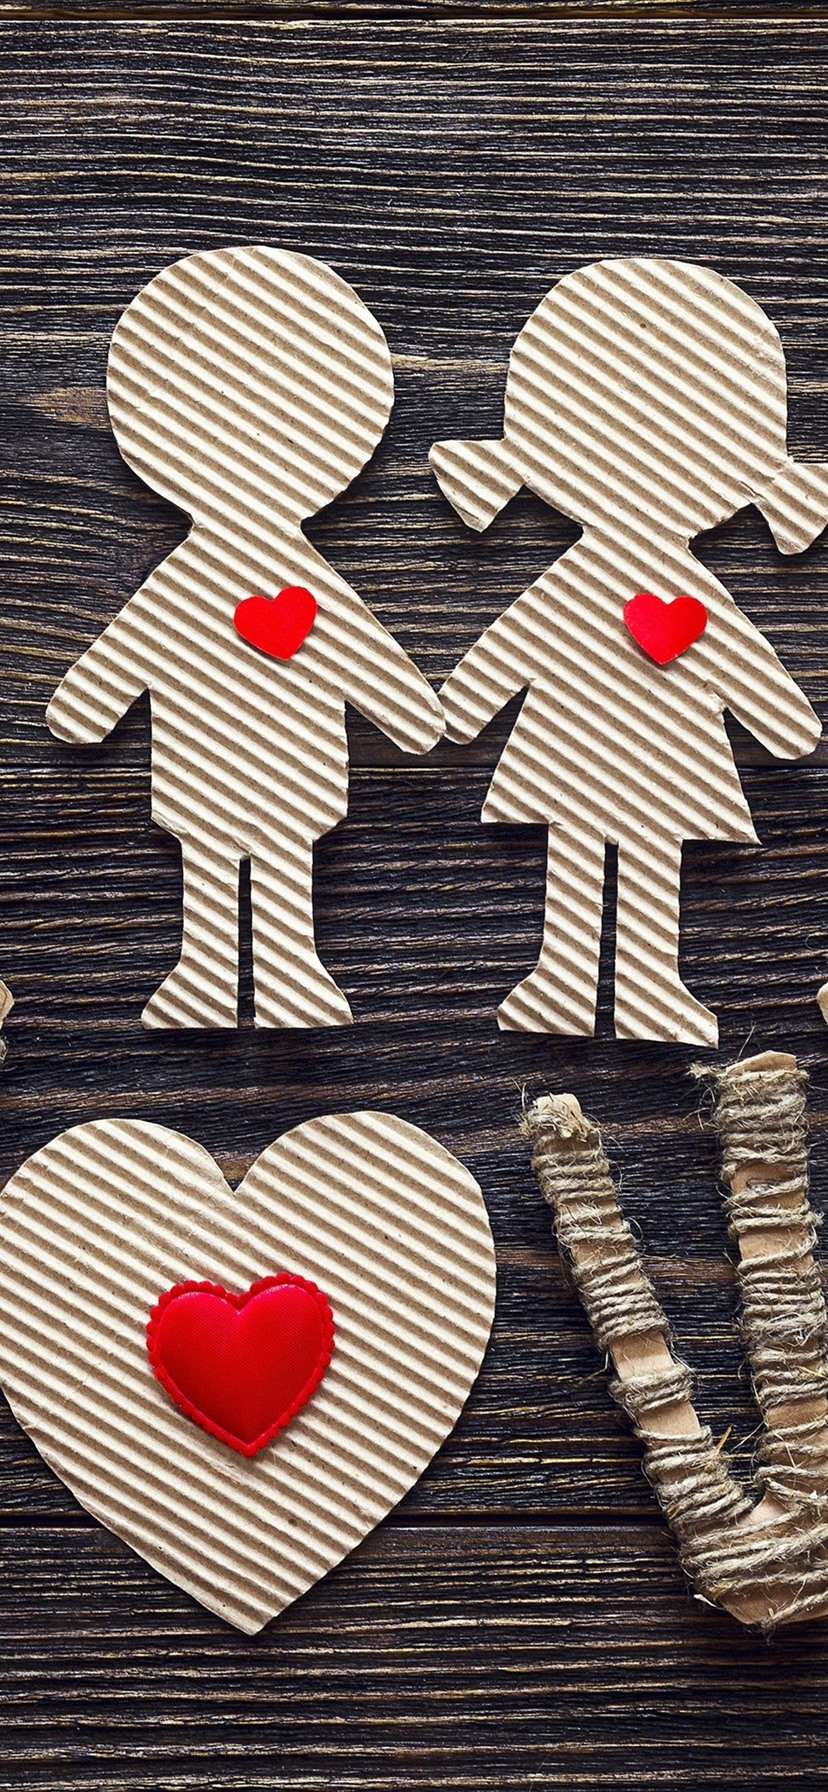 Wallpaper Love Girl And Boy Paper Art 3840x2160 Uhd 4k Picture